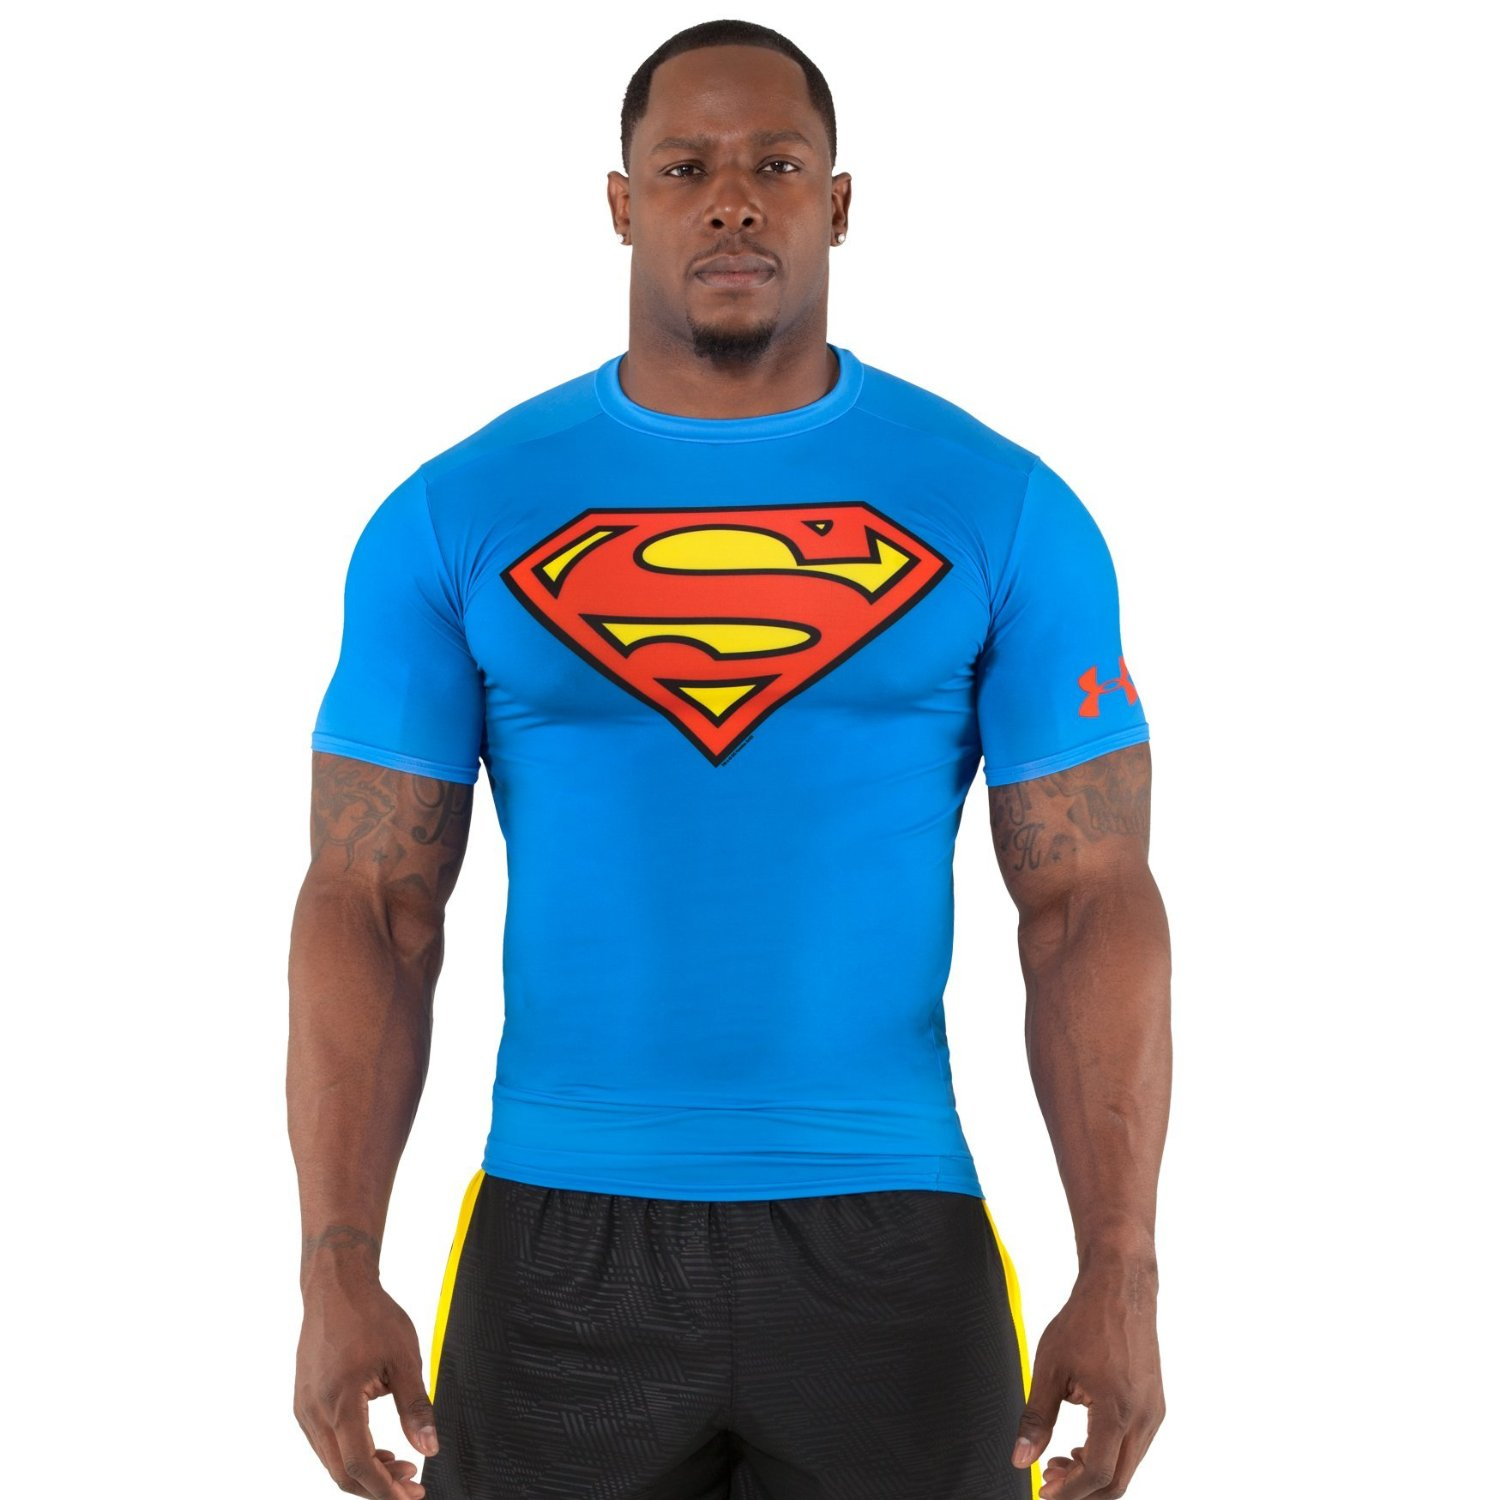 At I Am Superhero, you can be sure that you'll be getting the very best compression clothing, featuring all the classics from Batman, to Captain America, to Thor, Green Lantern, Flash, Wonder Woman, Spiderman and so much more.